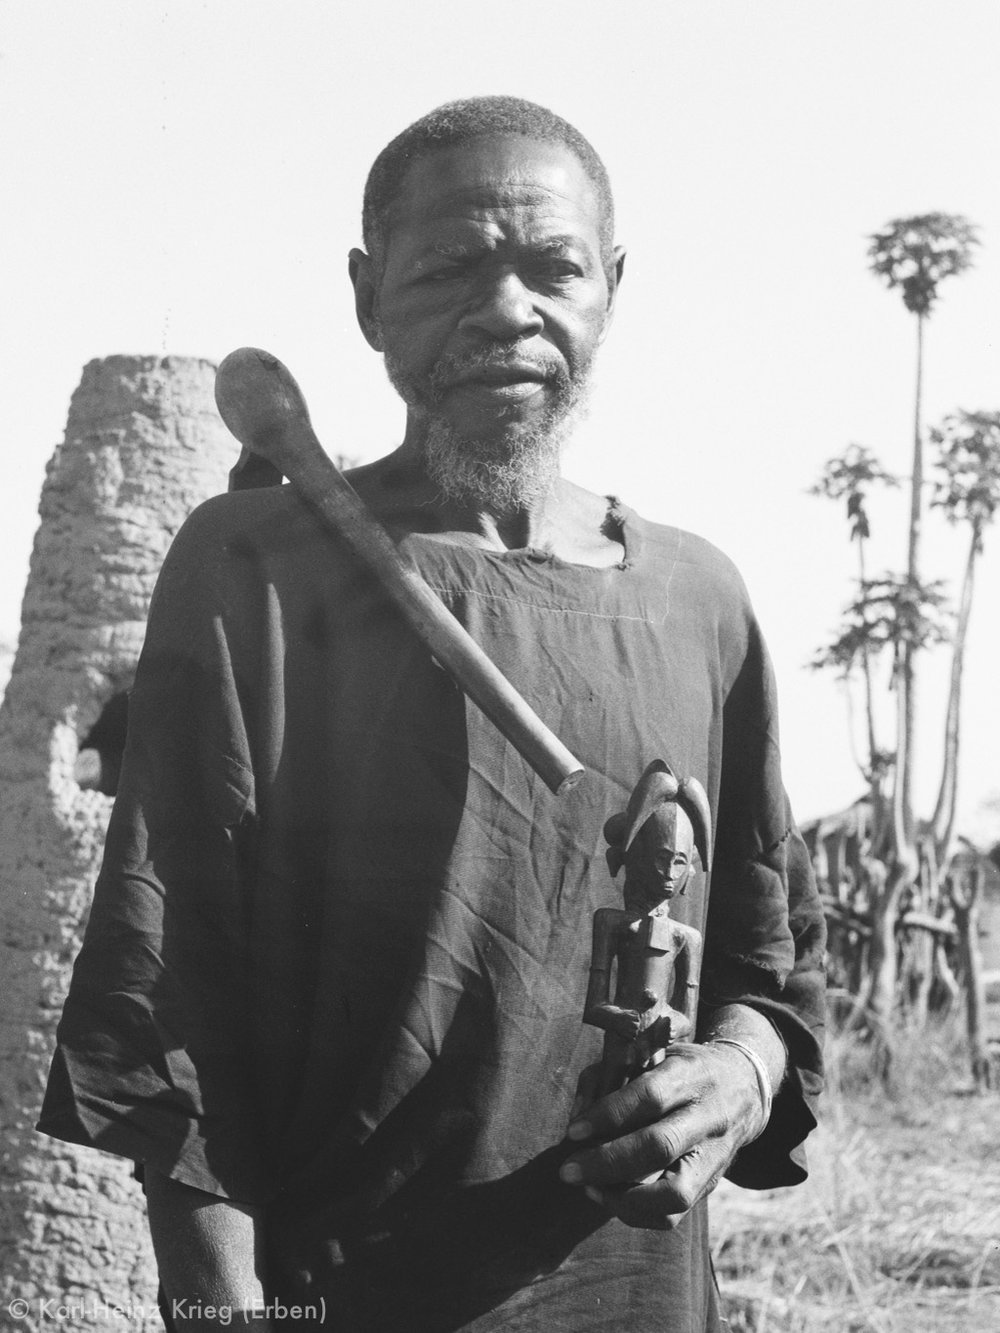 Kolotielema Dagnogo with a figure that he carved. On his right shoulder he carries an  adze , the symbol of a wood carver. Behind him are old furnaces used to smelt iron in the past. Photo: Karl-Heinz Krieg, Poundiou (Region of Boundiali), 1974